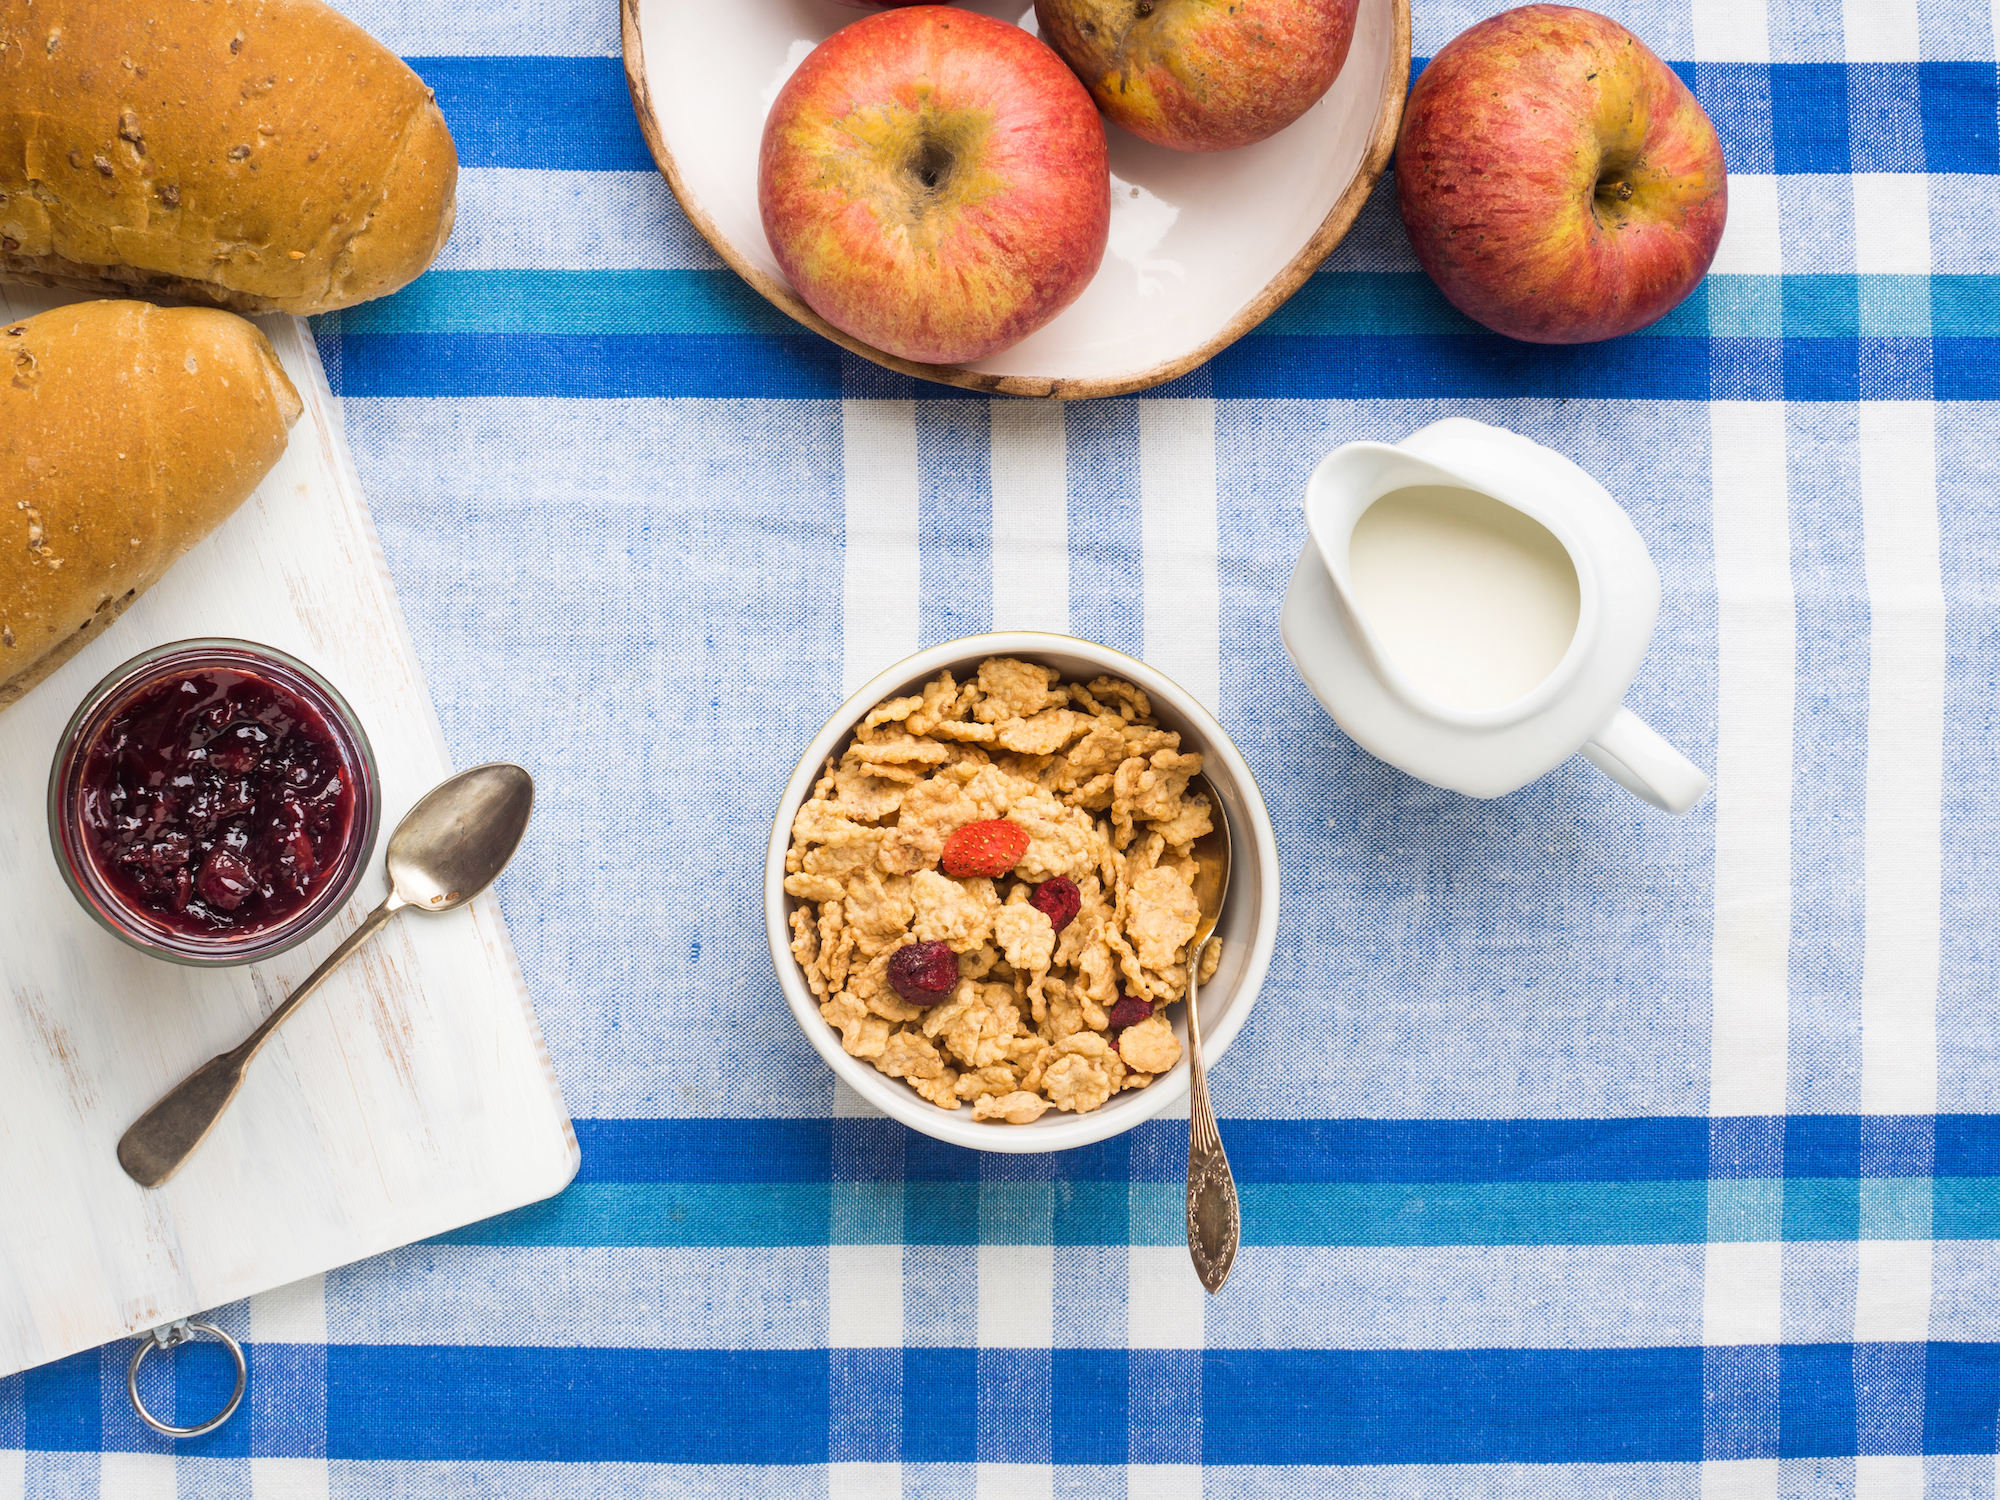 Home breakfast with cereals, milk, fruit and bread served on blue and white table cloth.